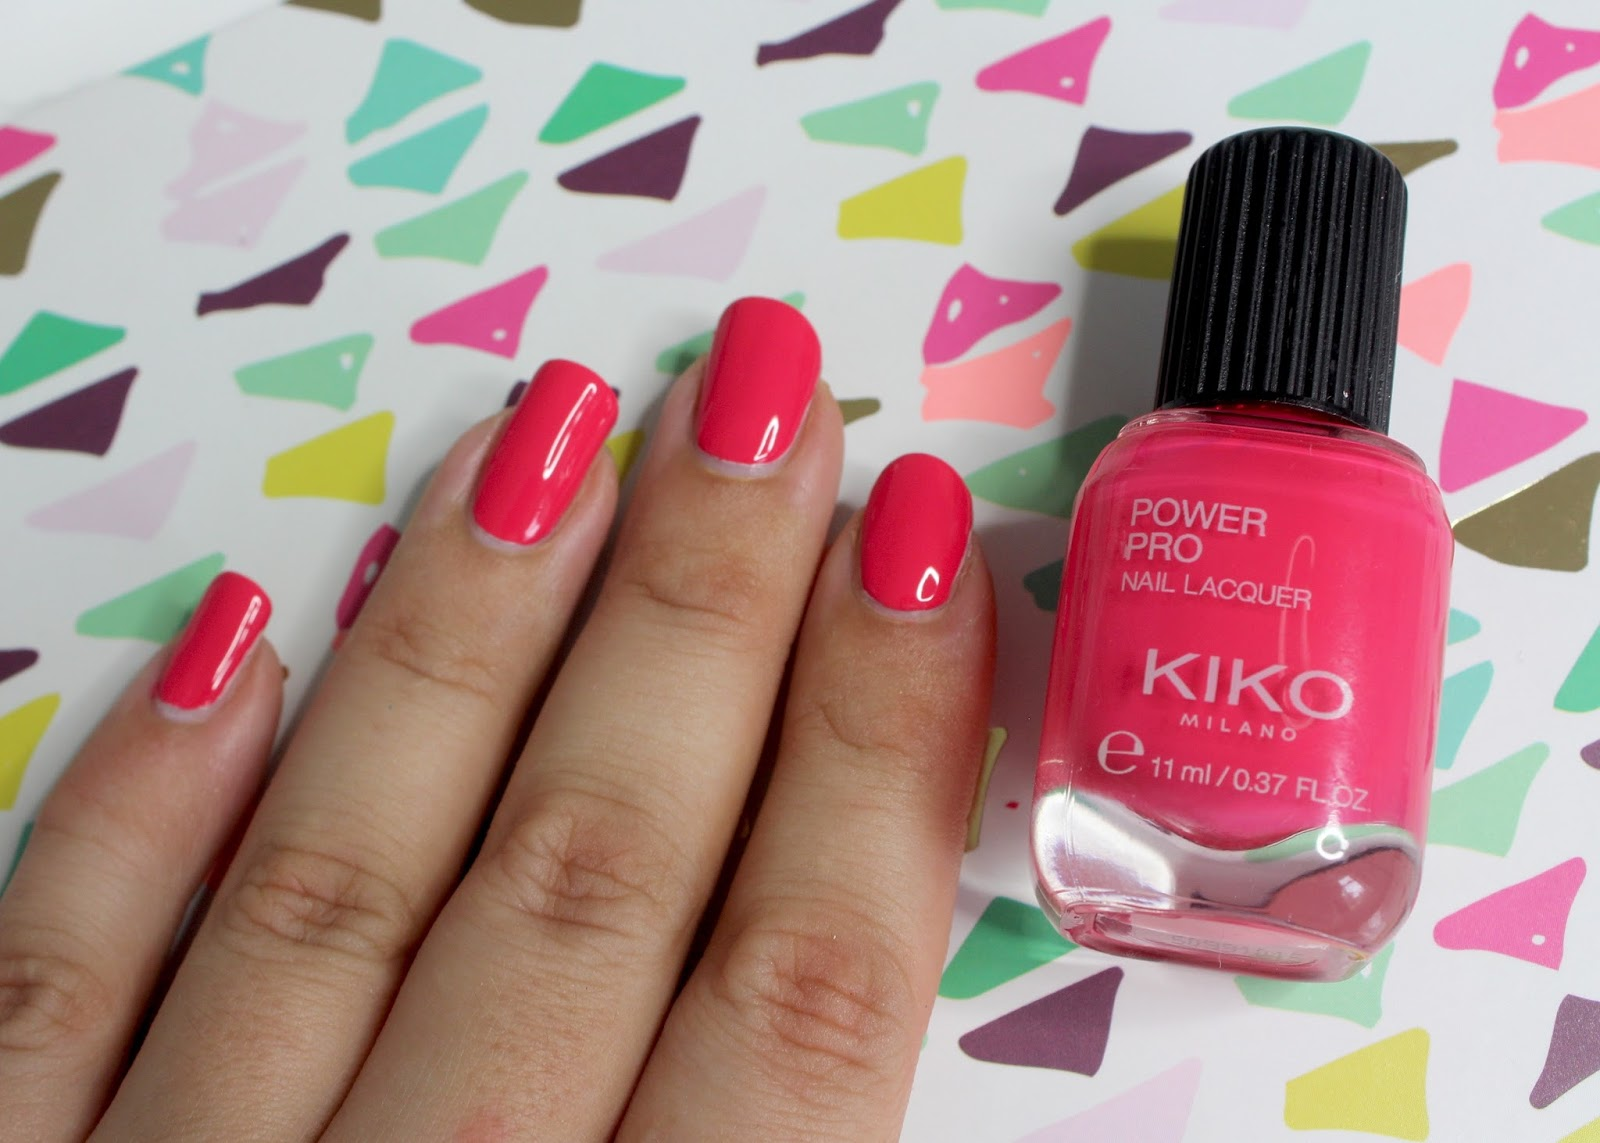 KIKO power pro nail lacquer in red, camelia and fuchsia - review and ...